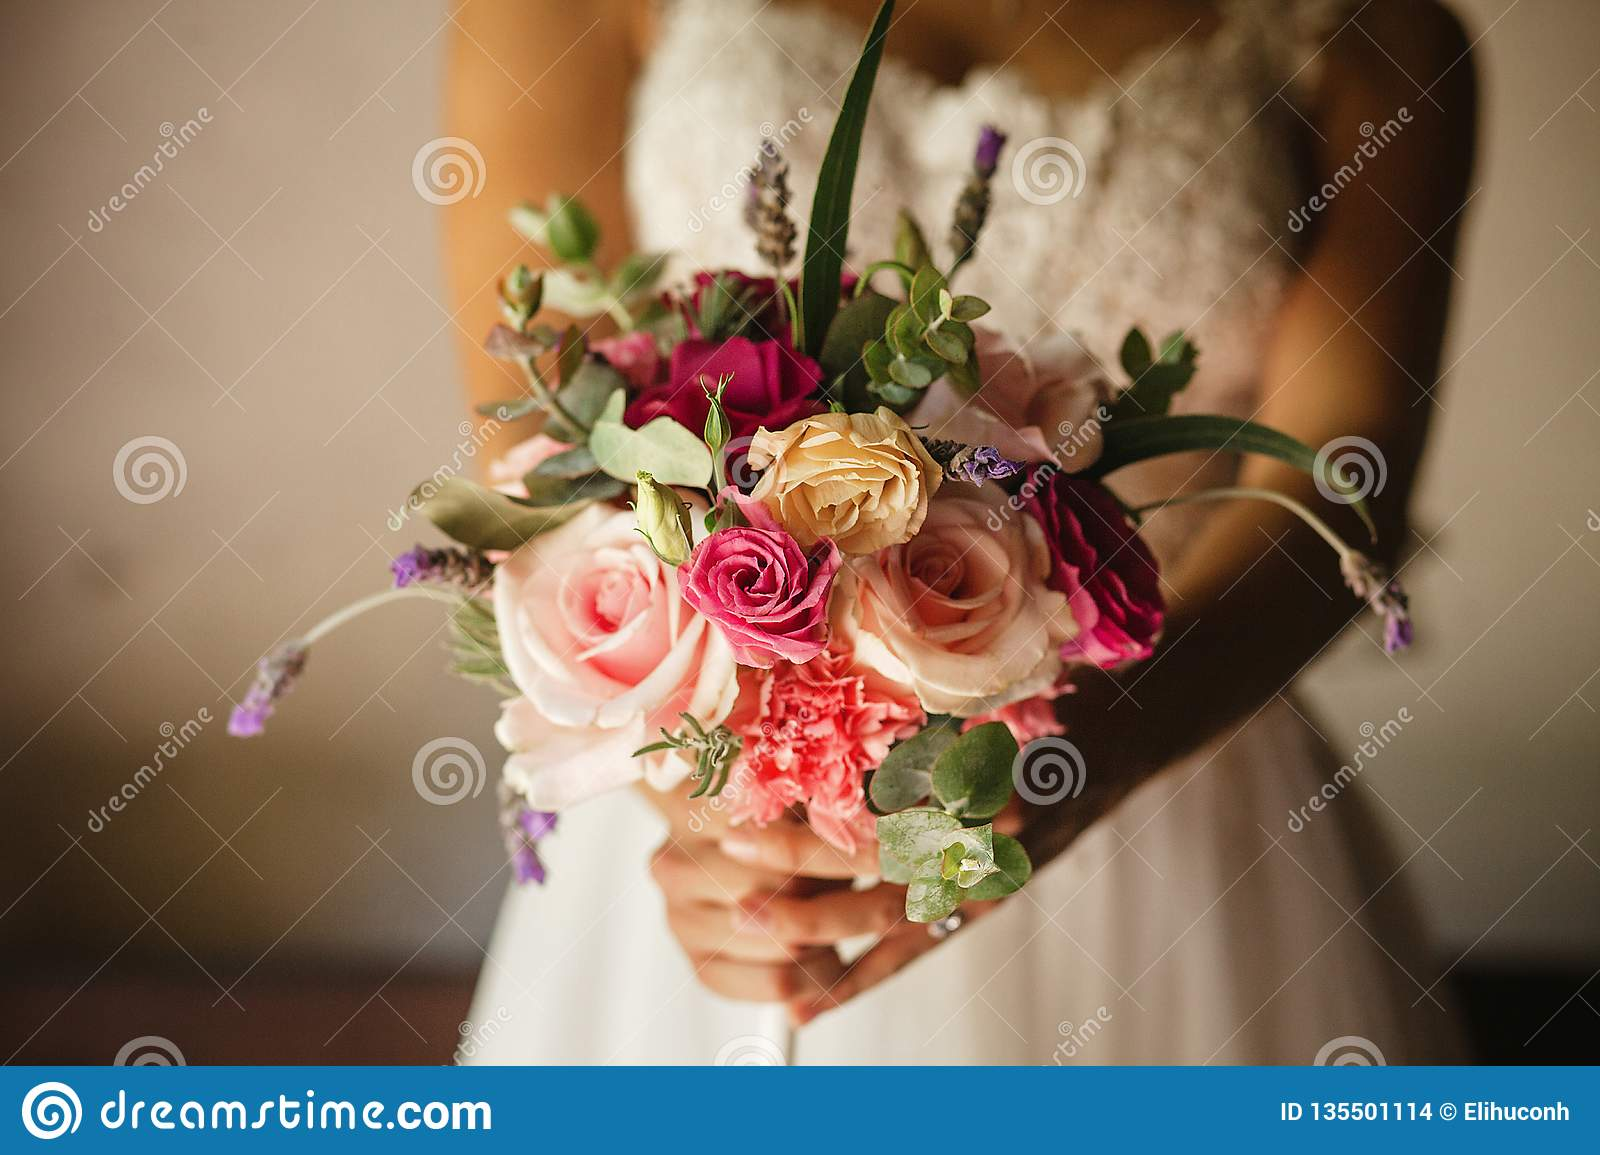 mexican wedding bouquet of flowers in the hands of the bride